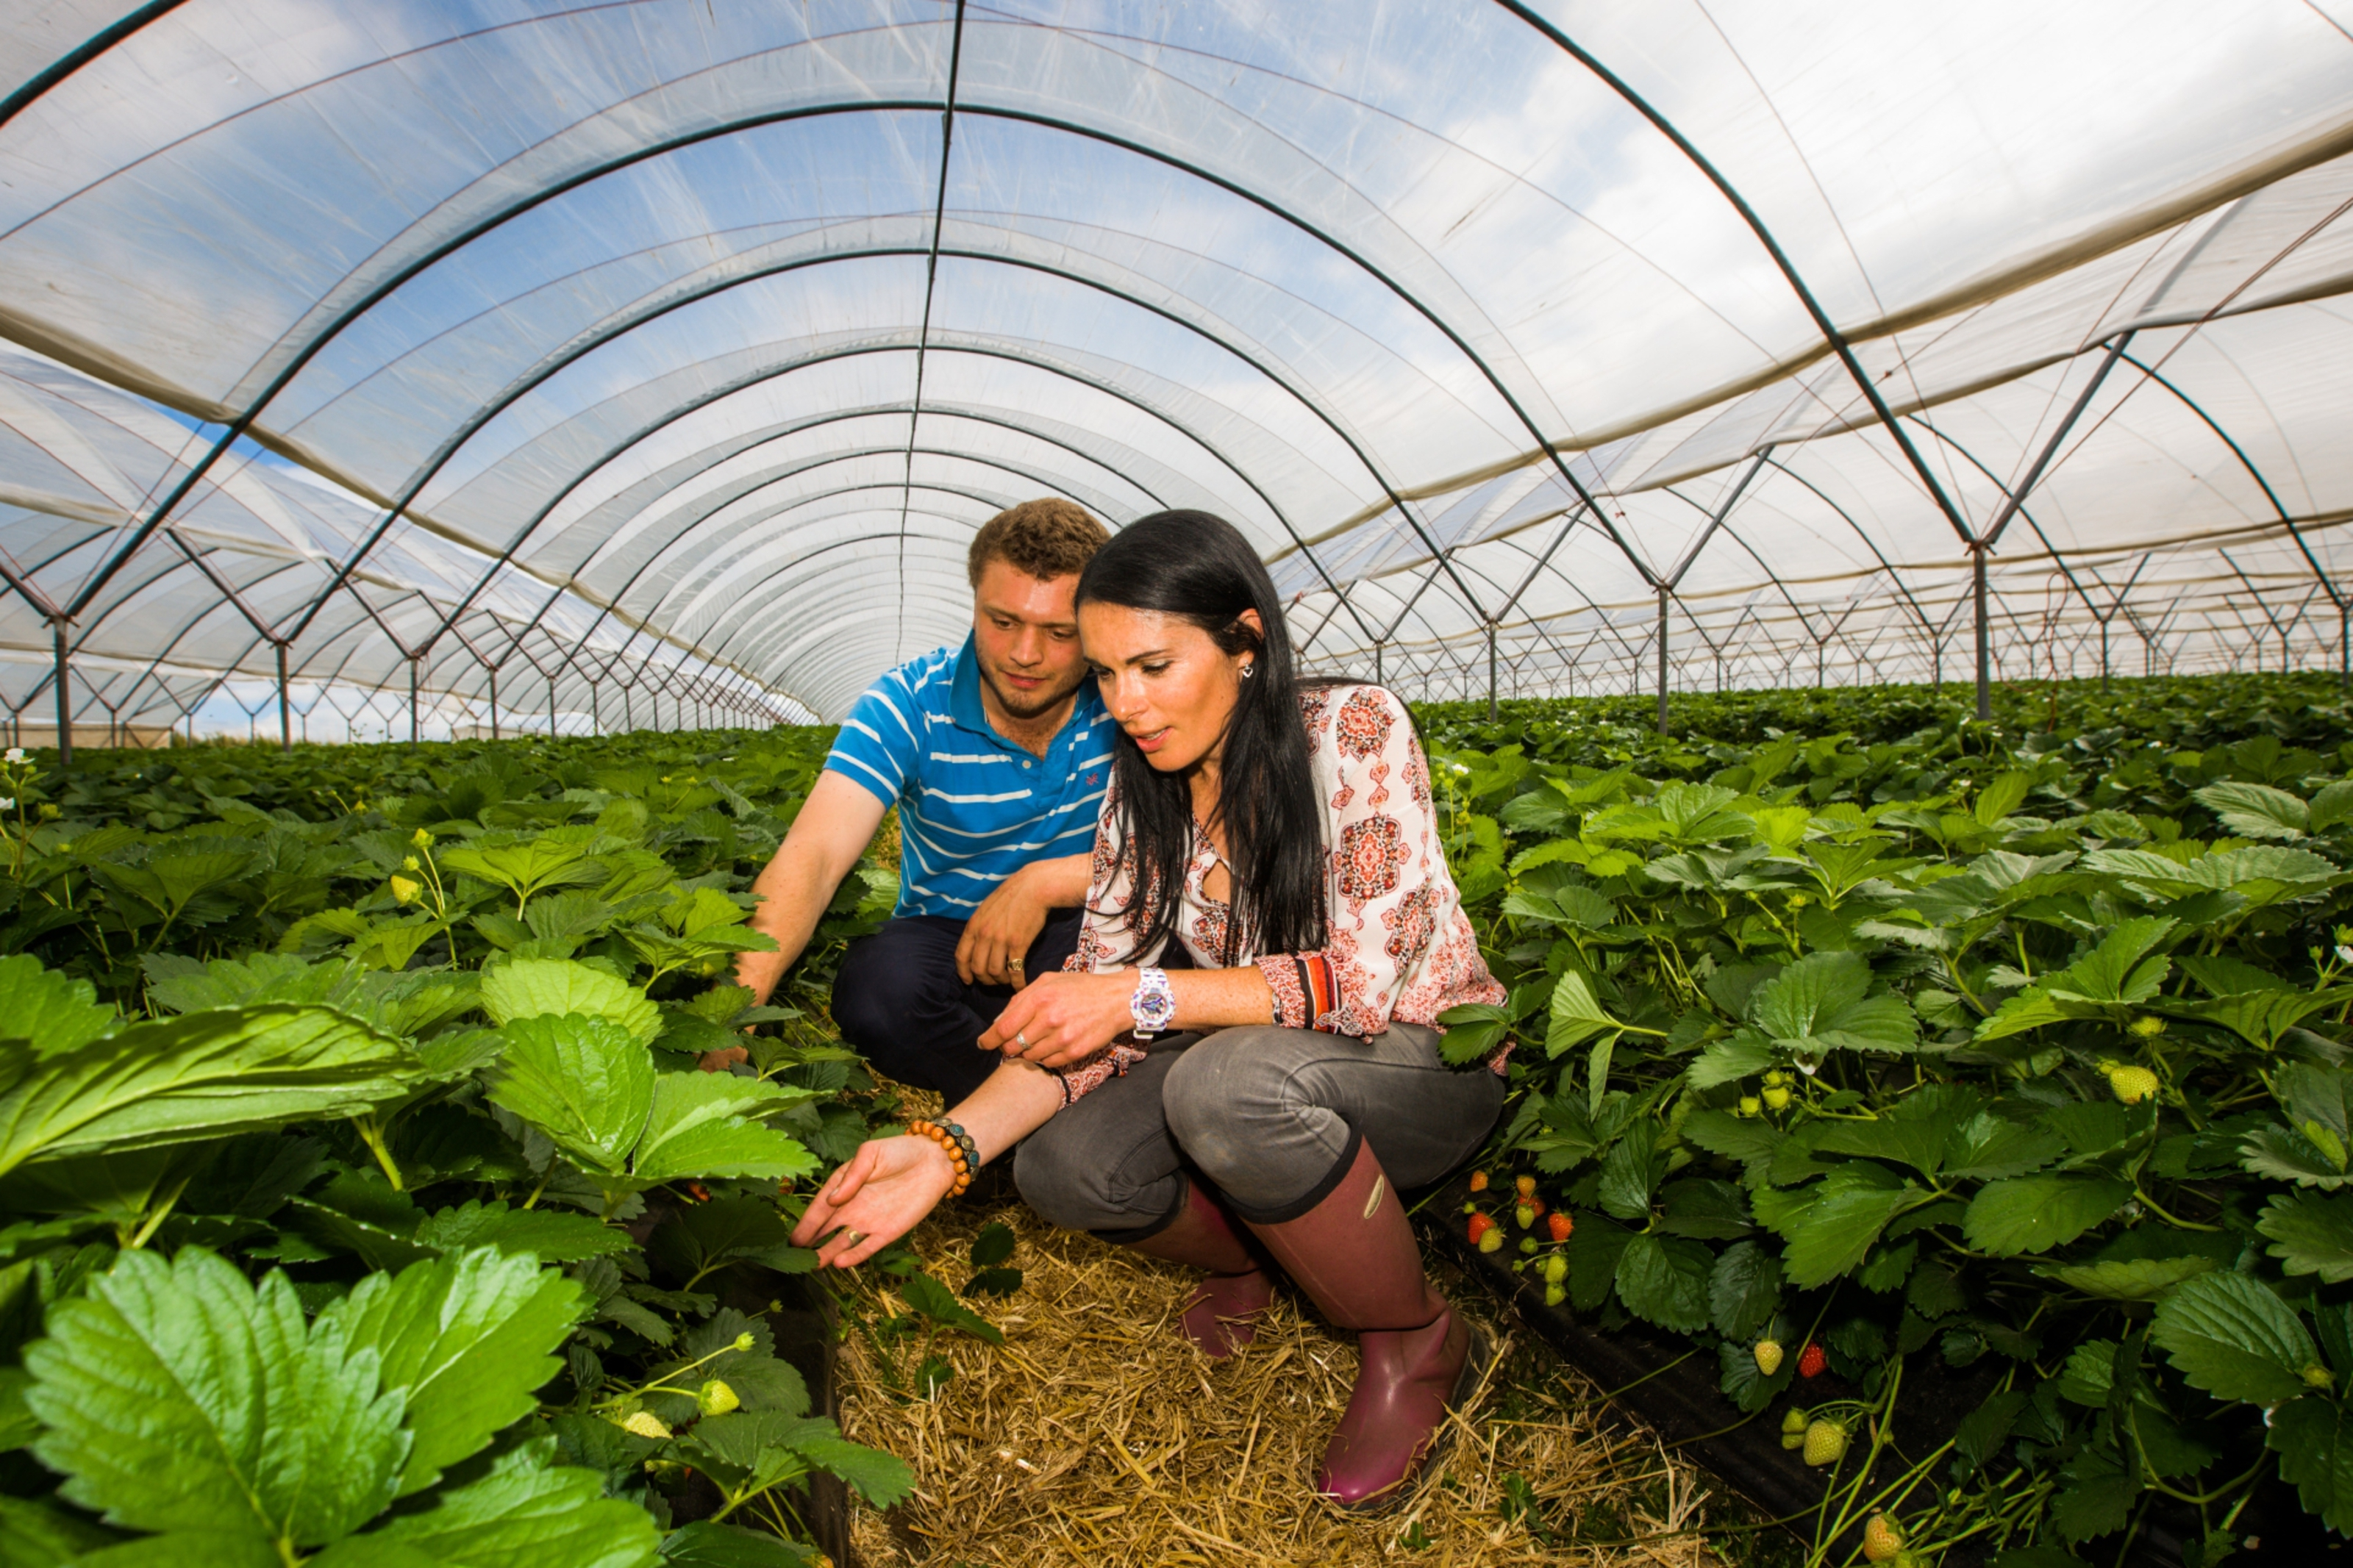 Gayle Ritchie and Charles Beamish search for the perfect strawberry inside a polytunnel.